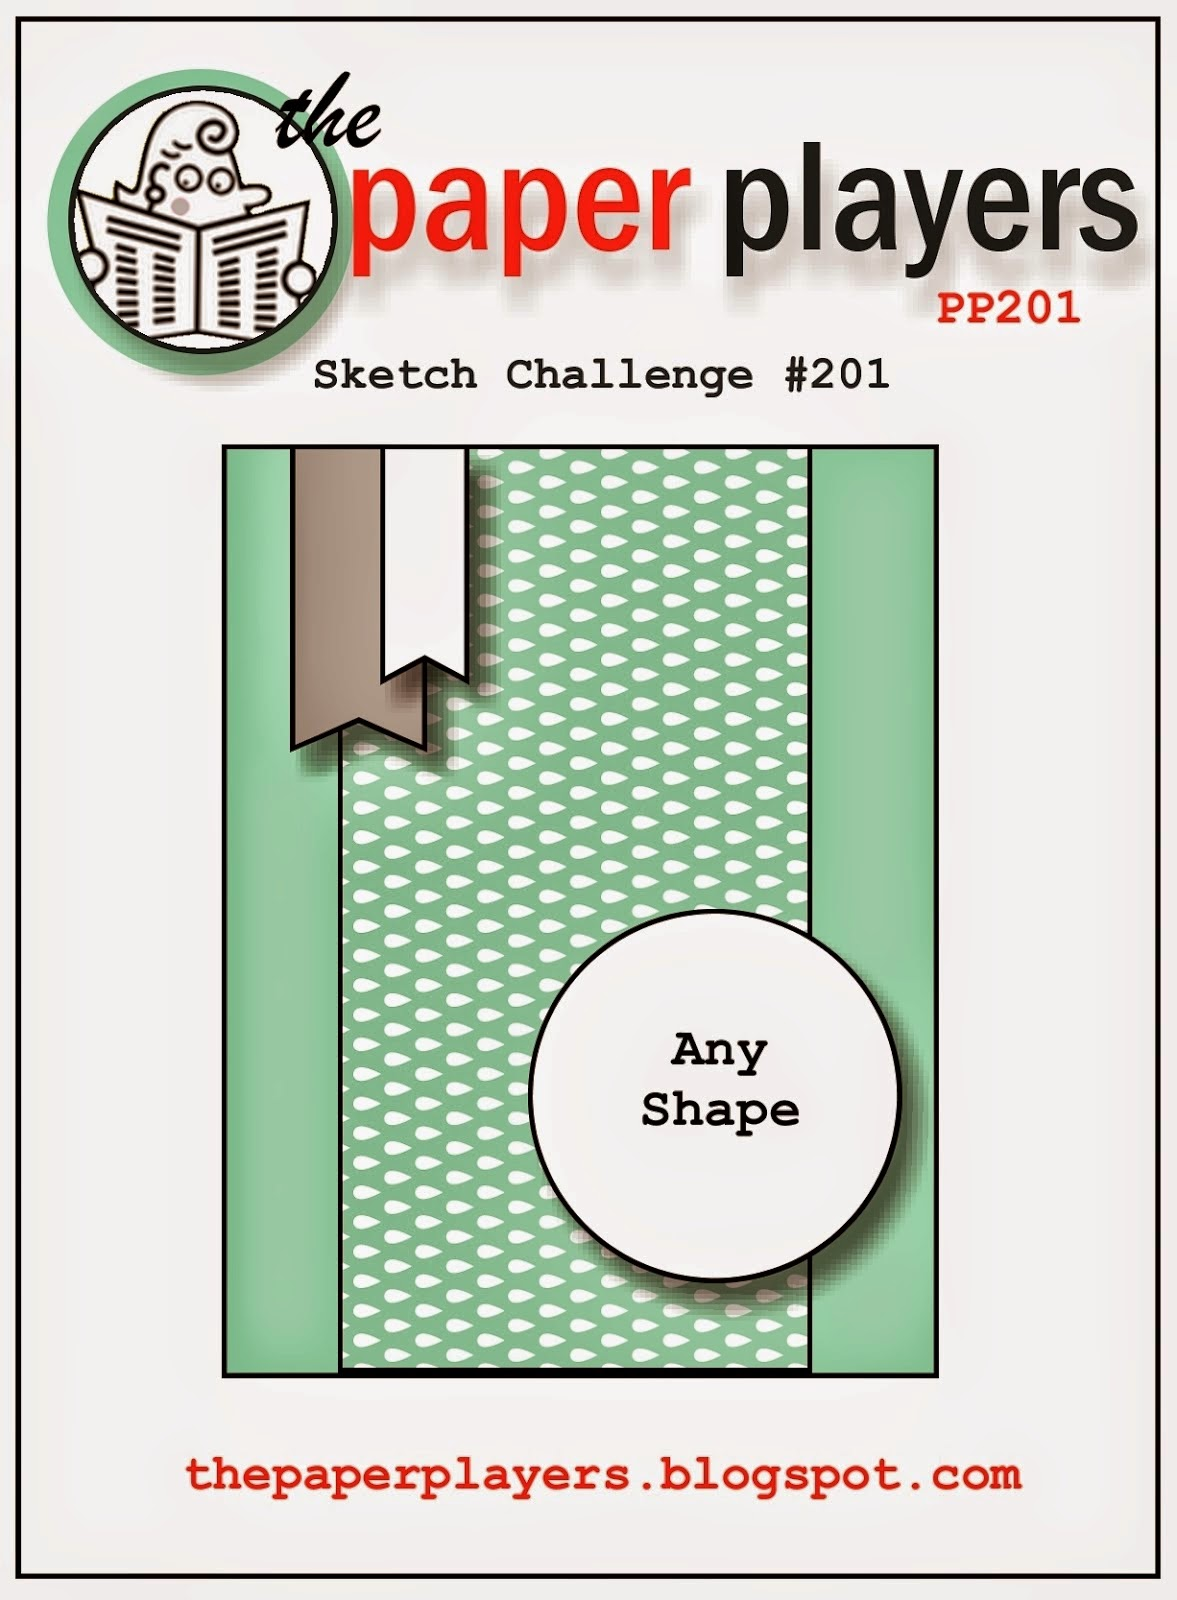 http://thepaperplayers.blogspot.ca/2014/06/paper-players-challenge-201-sketch-from.html